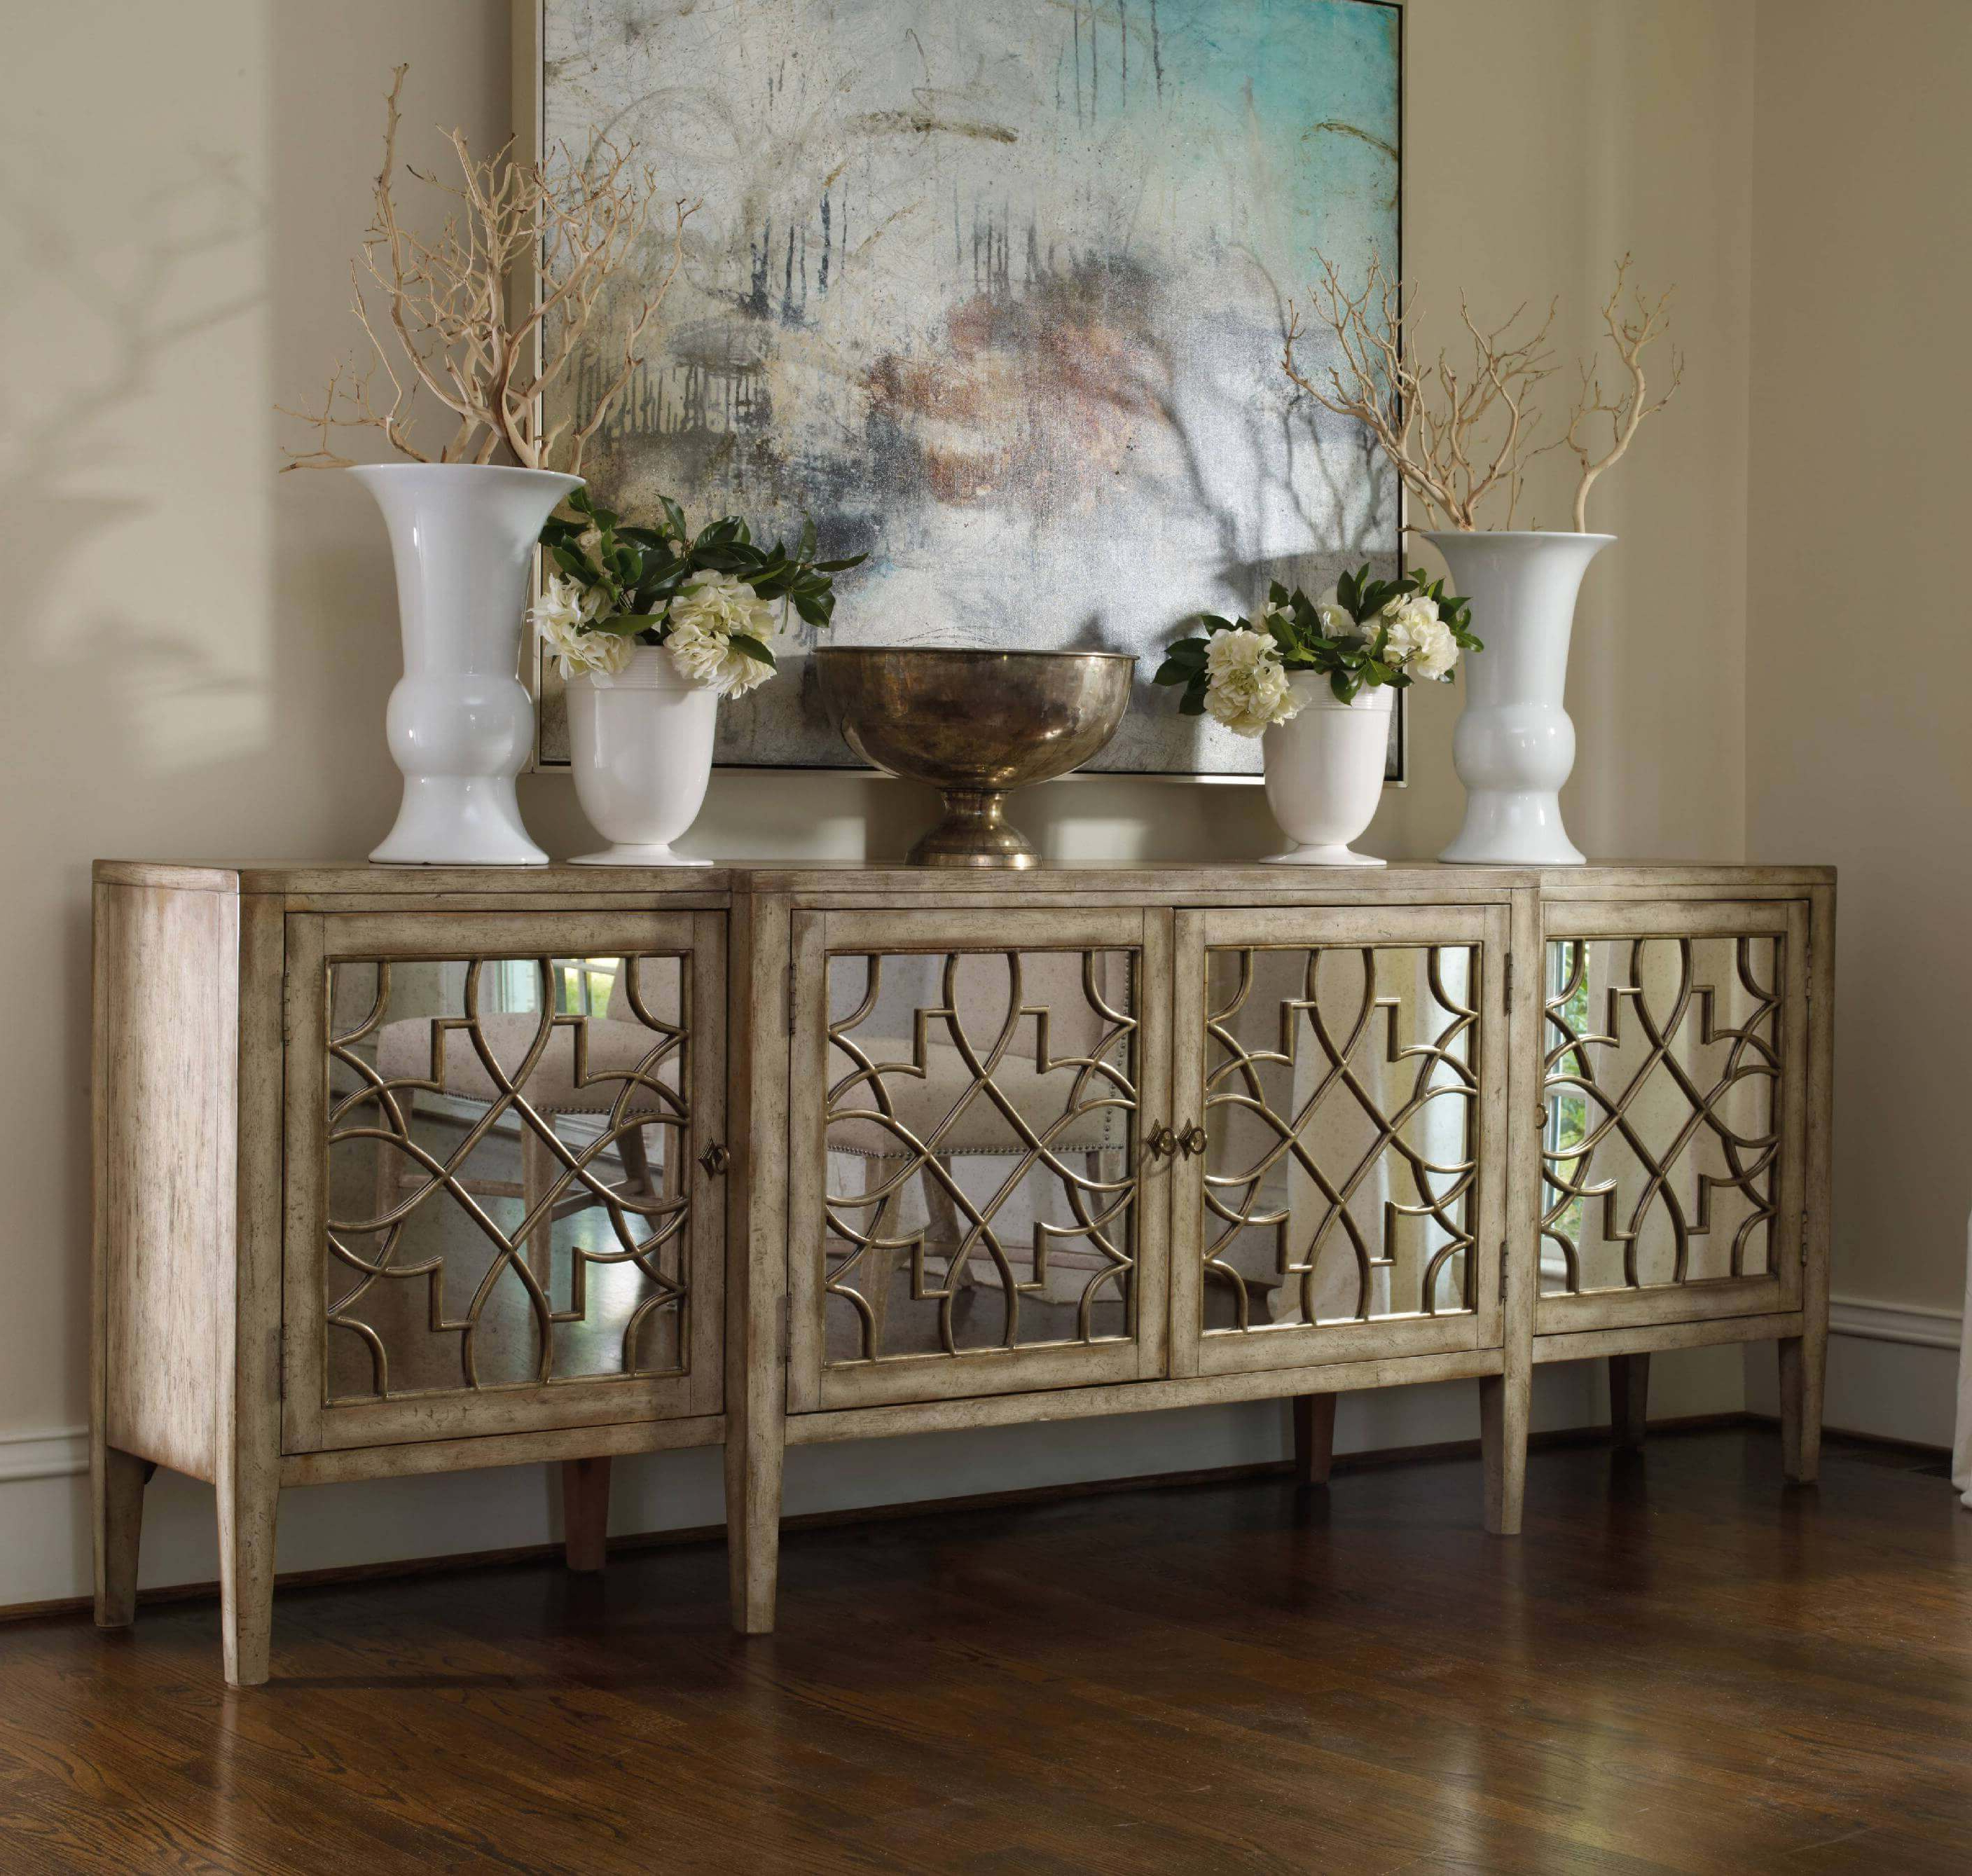 30 Best Rustic Glam Decoration Ideas And Designs For 2019 Throughout Natural Wood Mirrored Media Console Tables (Gallery 12 of 20)